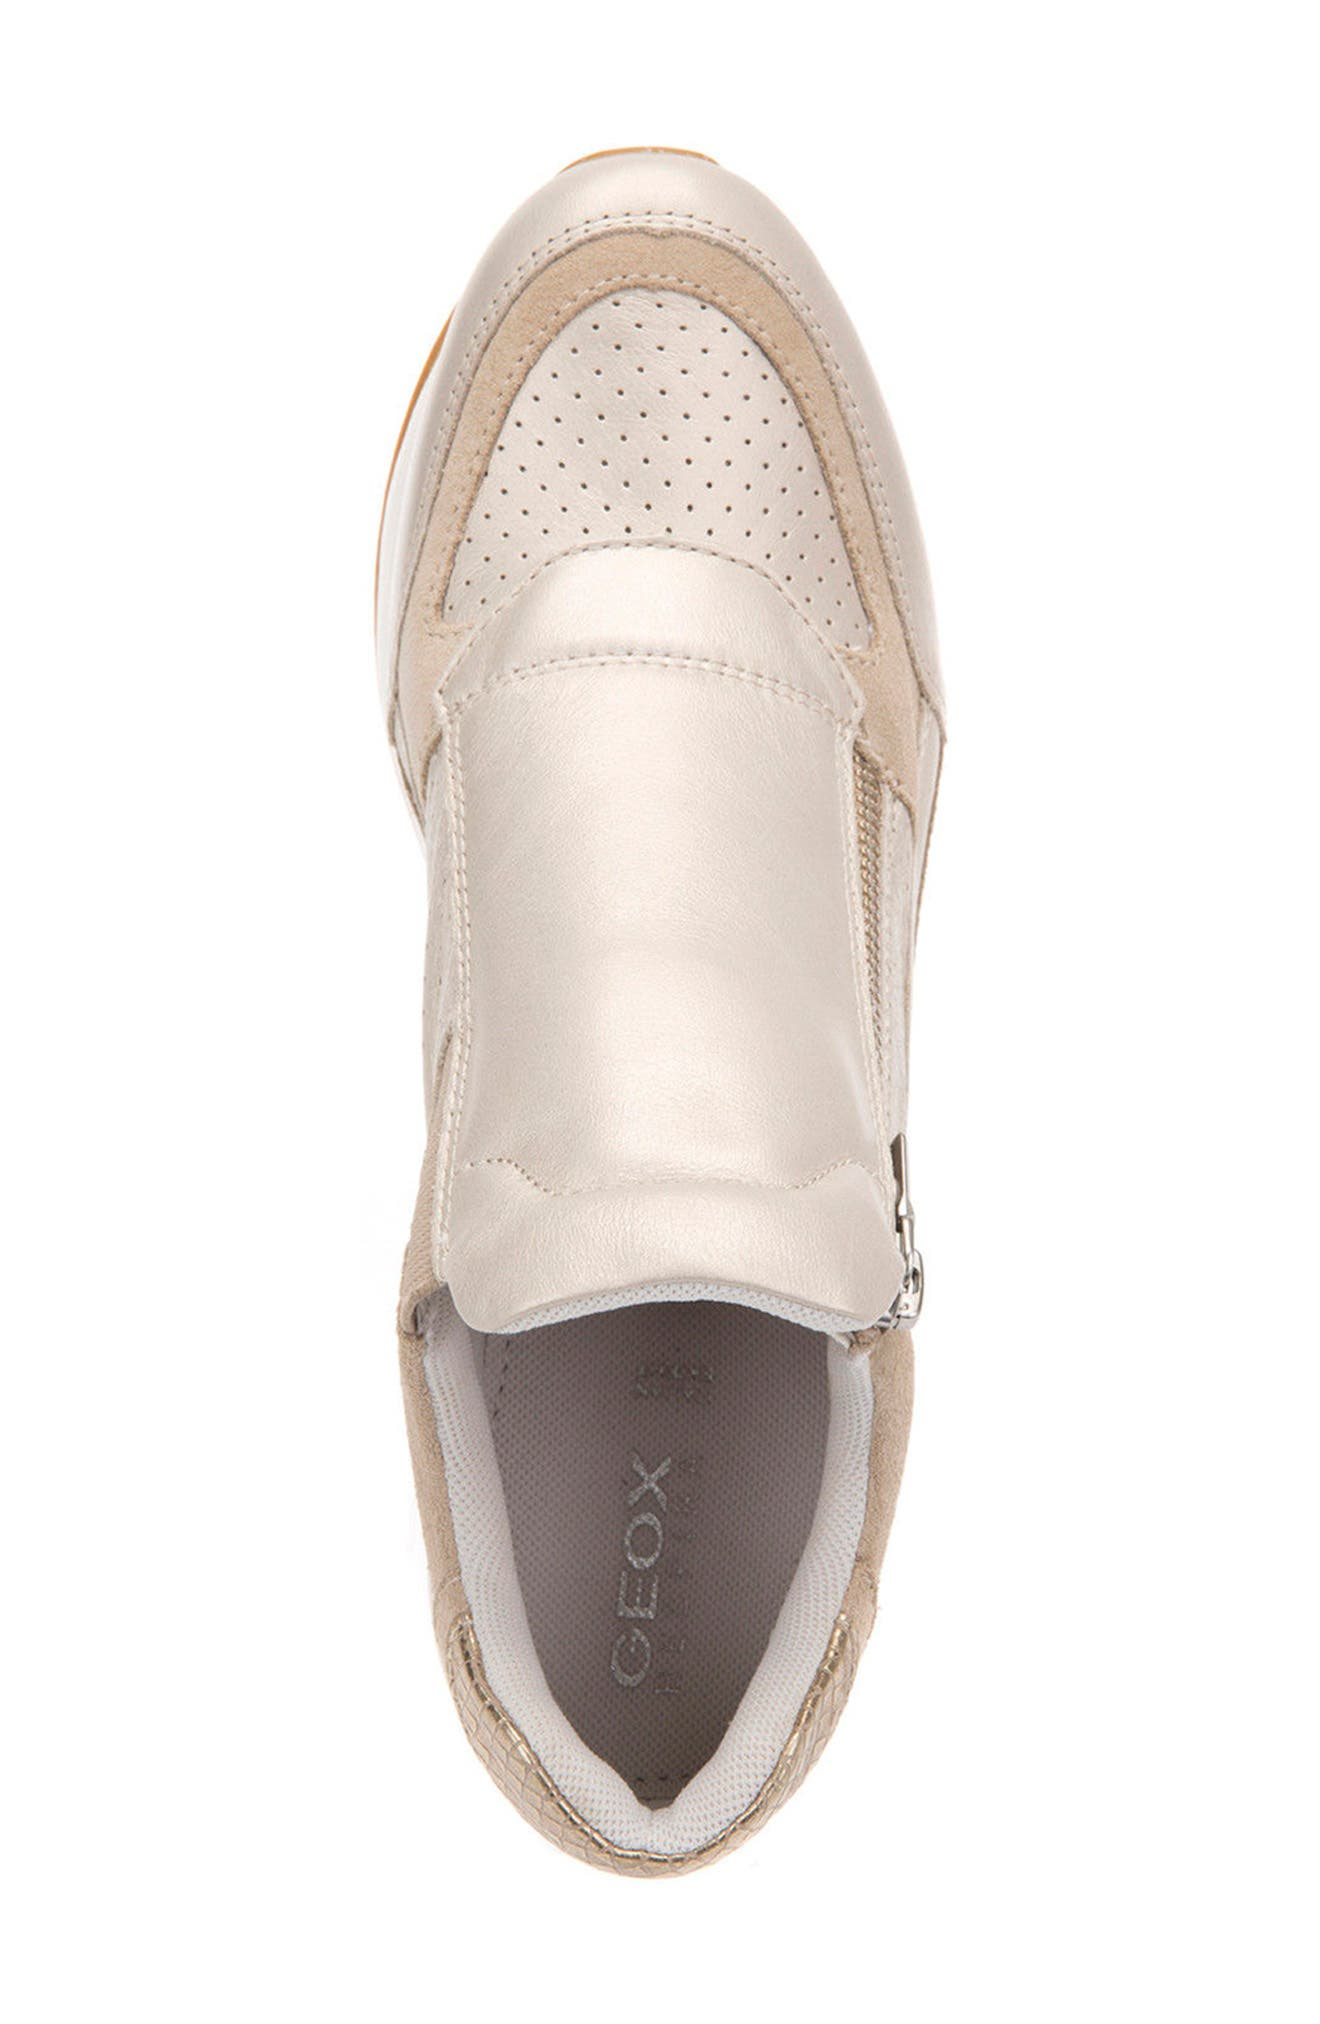 Nydame Wedge Sneaker,                             Alternate thumbnail 5, color,                             PLATINUM LEATHER